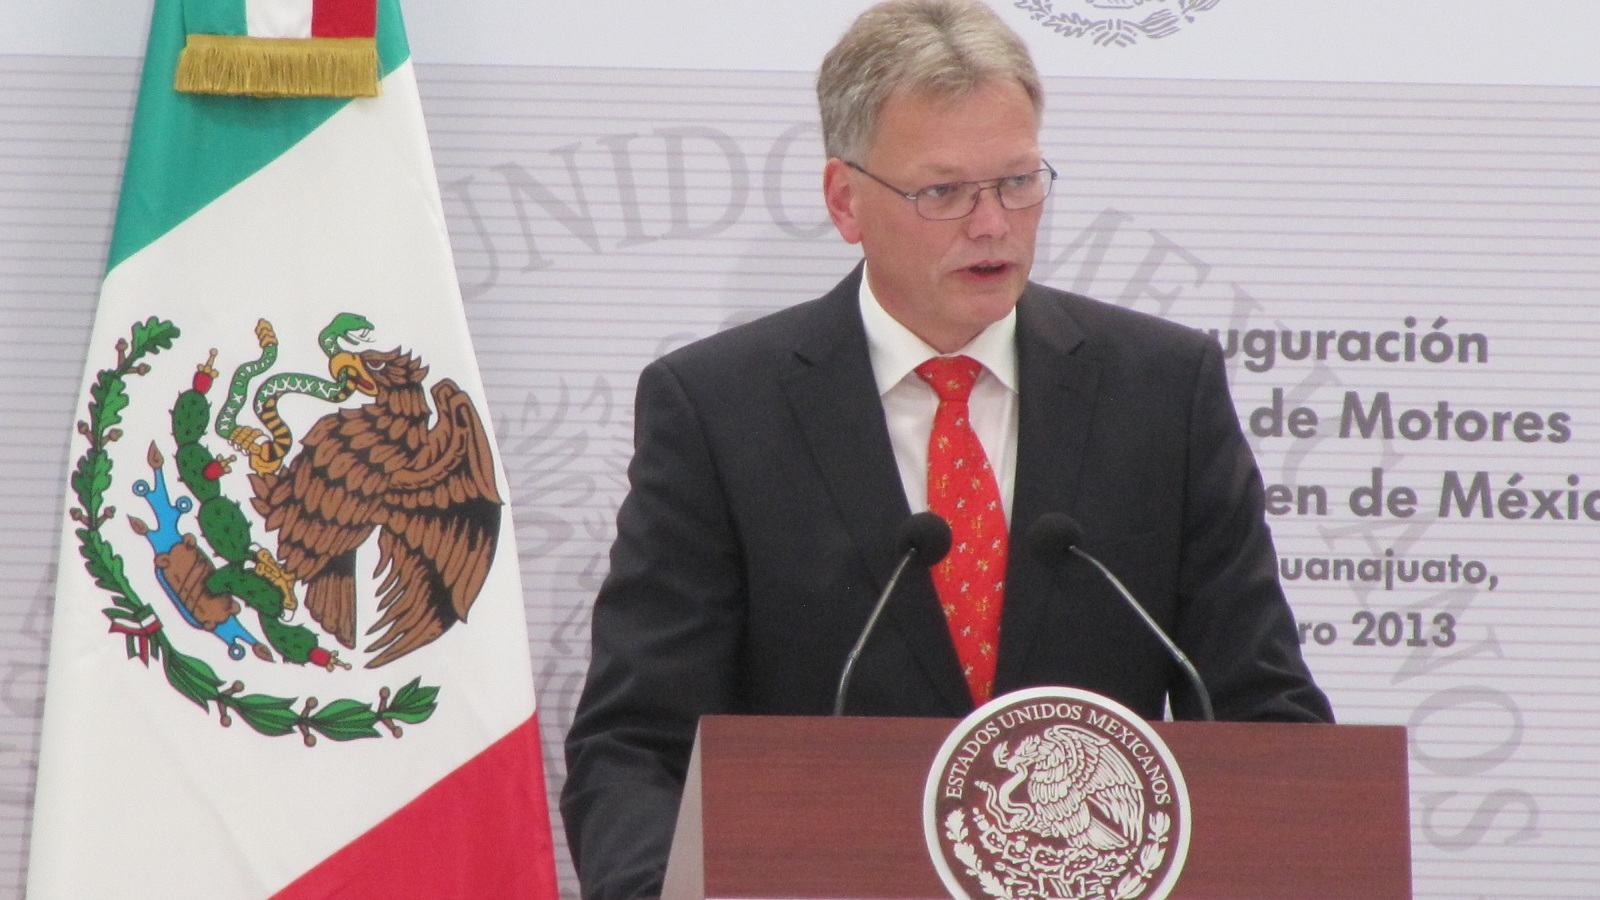 Andreas Hinrichs, CEO of VW de Mexico, speaks at opening of Volkswagen engine plant, Silao, Mexico